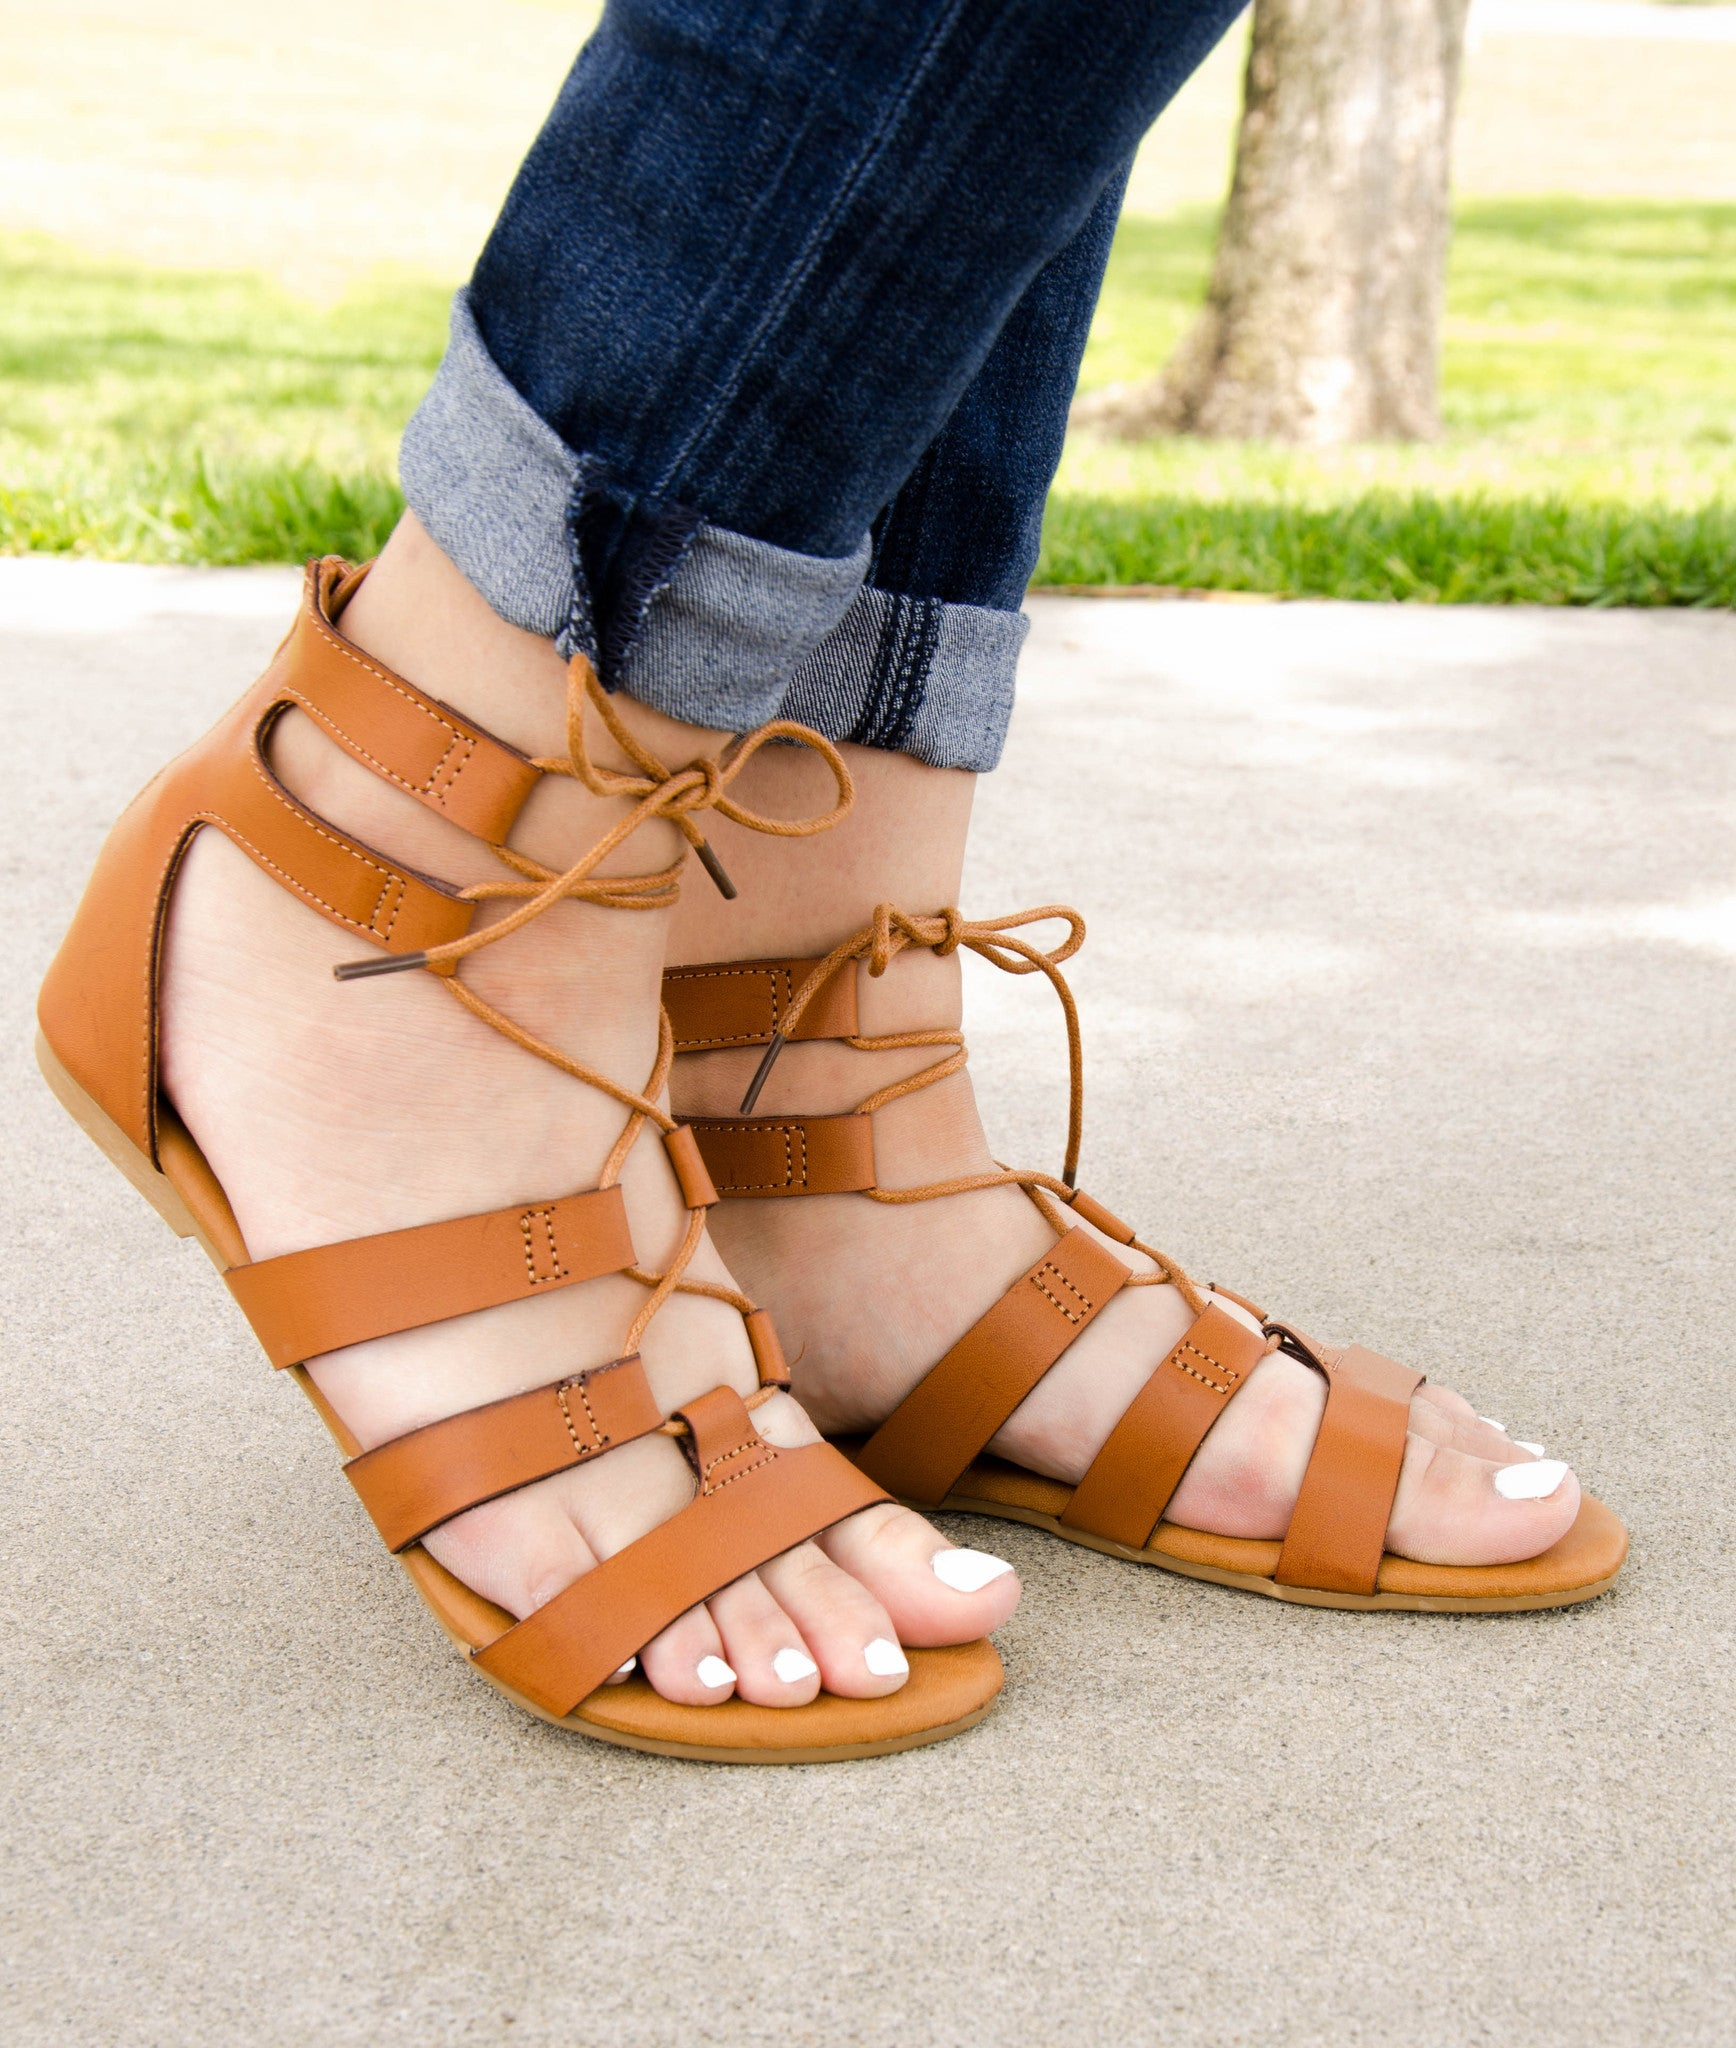 980ecb2432fd Gladiator Lace Up Flat Sandals – Chica s Shoetique